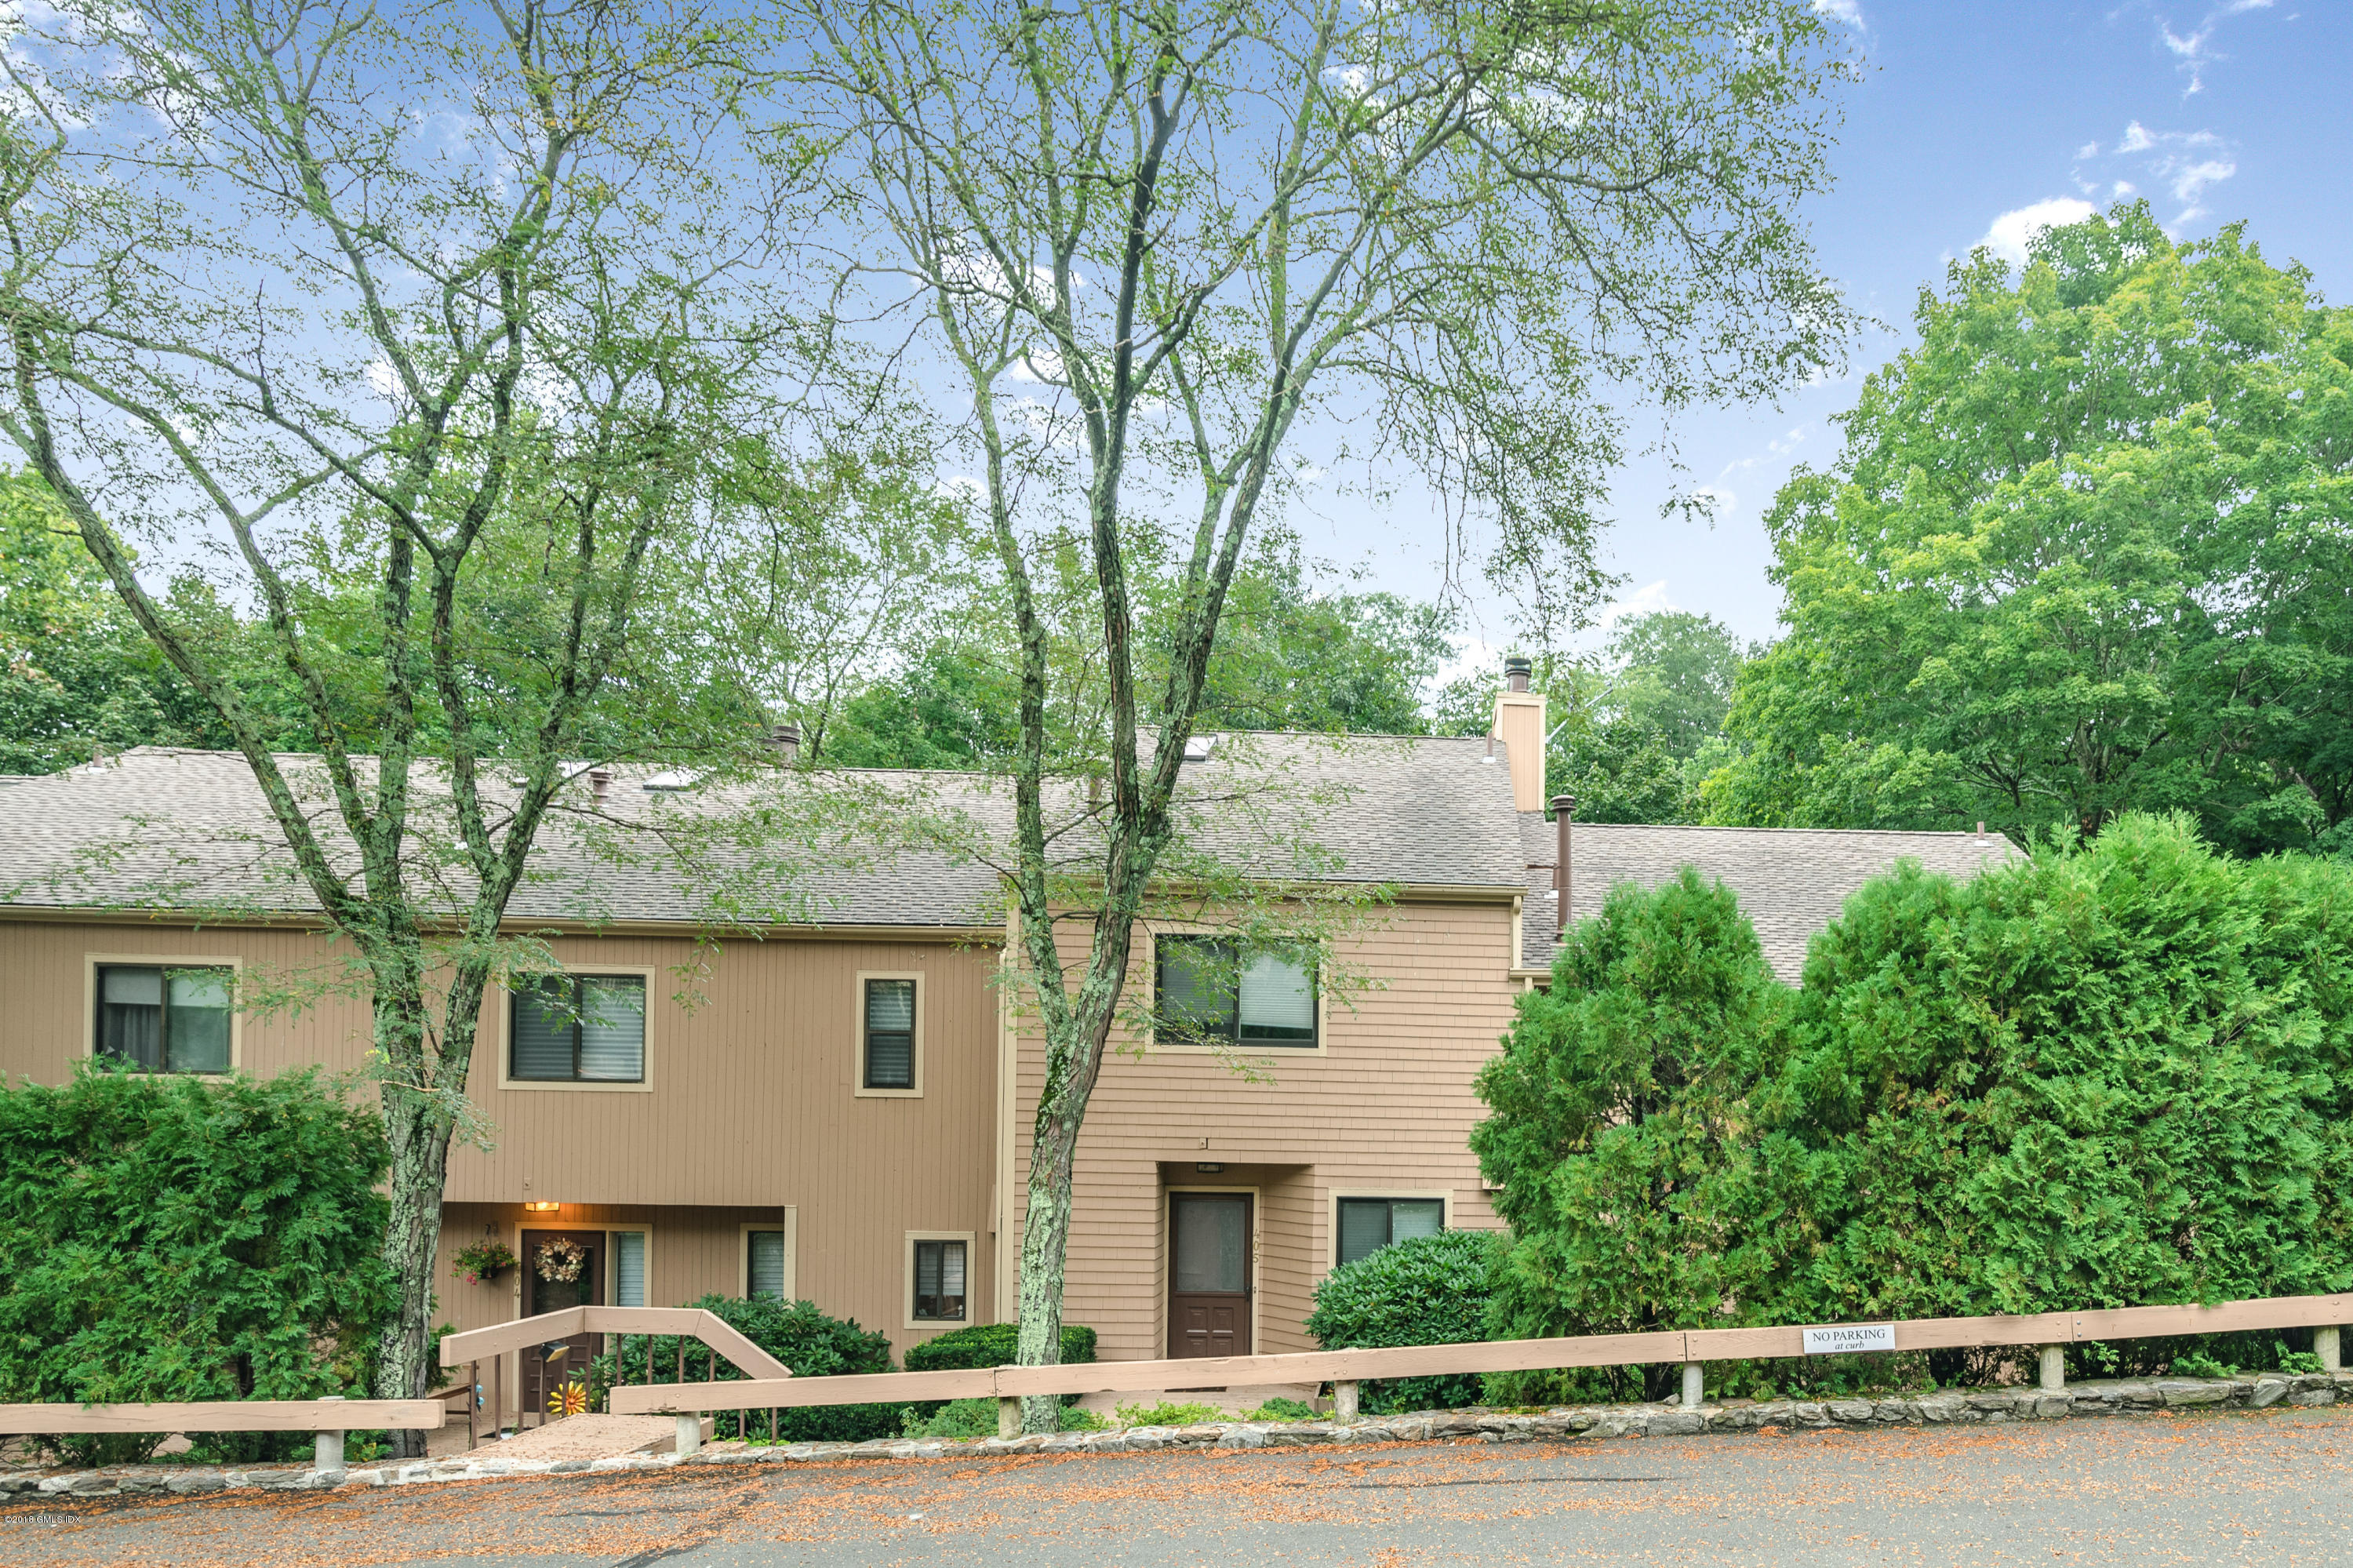 45 Ettl Lane, Greenwich, Connecticut 06831, 2 Bedrooms Bedrooms, ,3 BathroomsBathrooms,Condominium,For sale,Ettl,110534